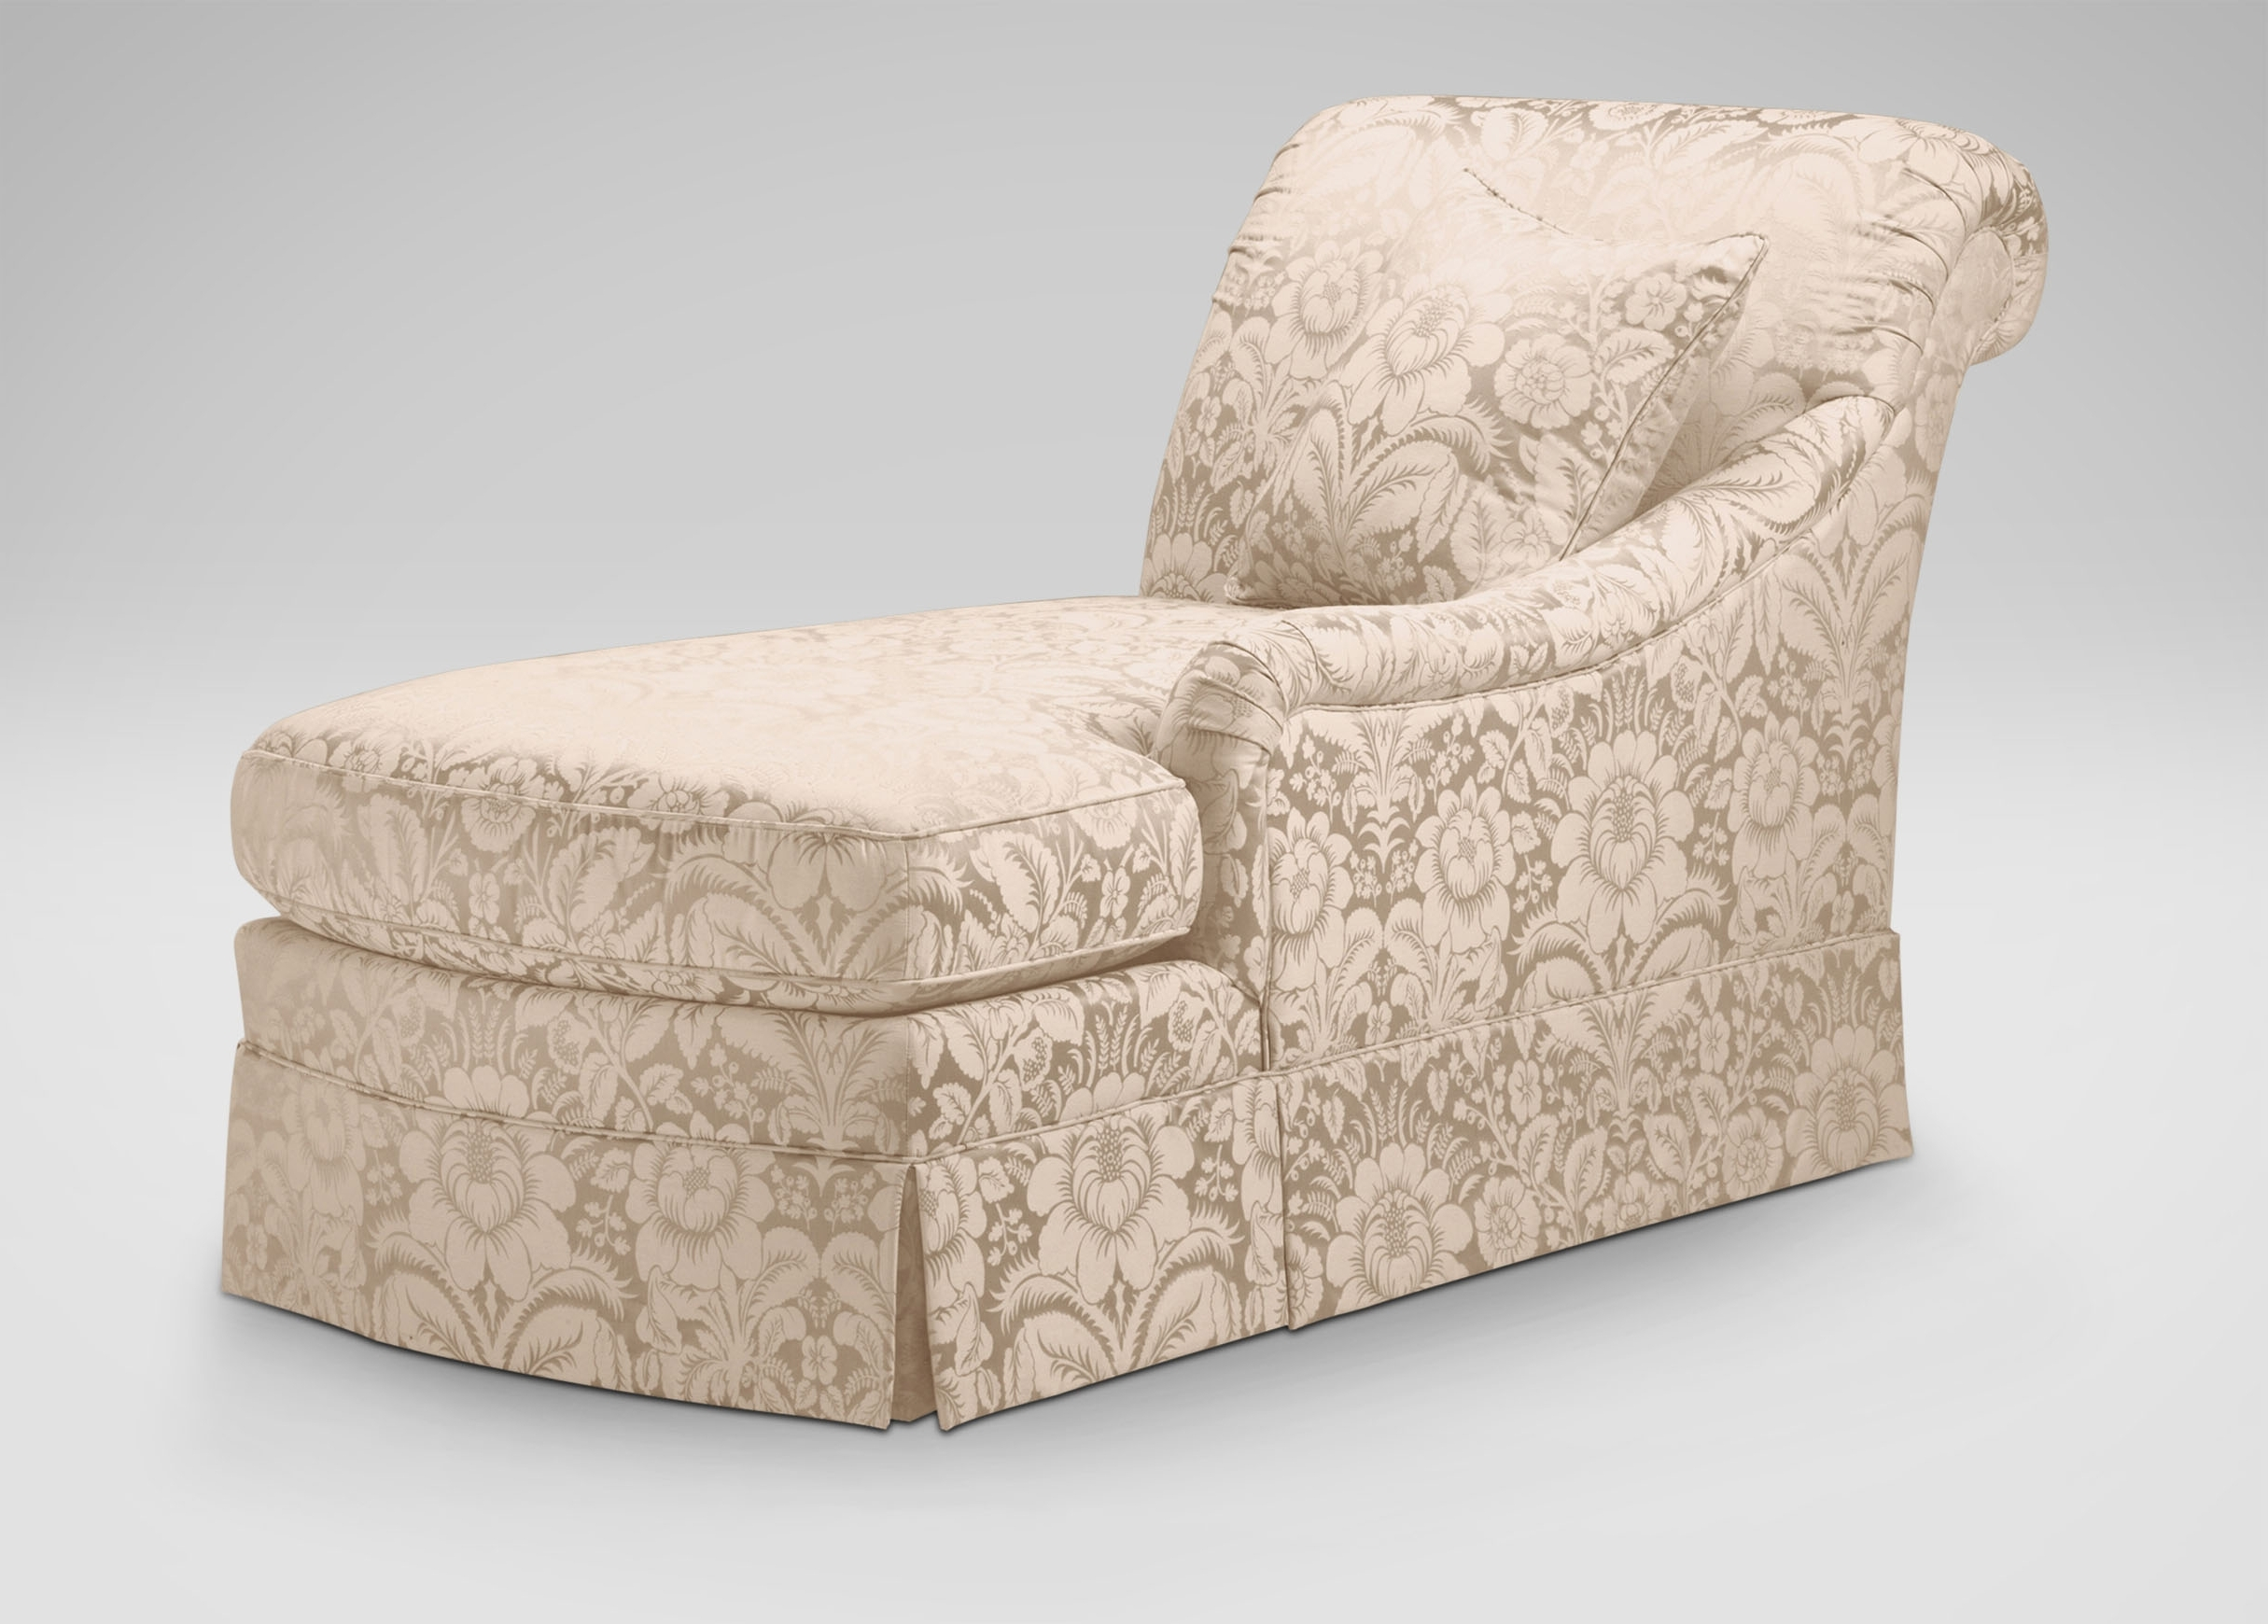 Recent Covers For Chaise Lounge Chair Inside Chaise Lounge Slipcovers – Slipcovers For Chaise Lounge Chairs (View 14 of 15)